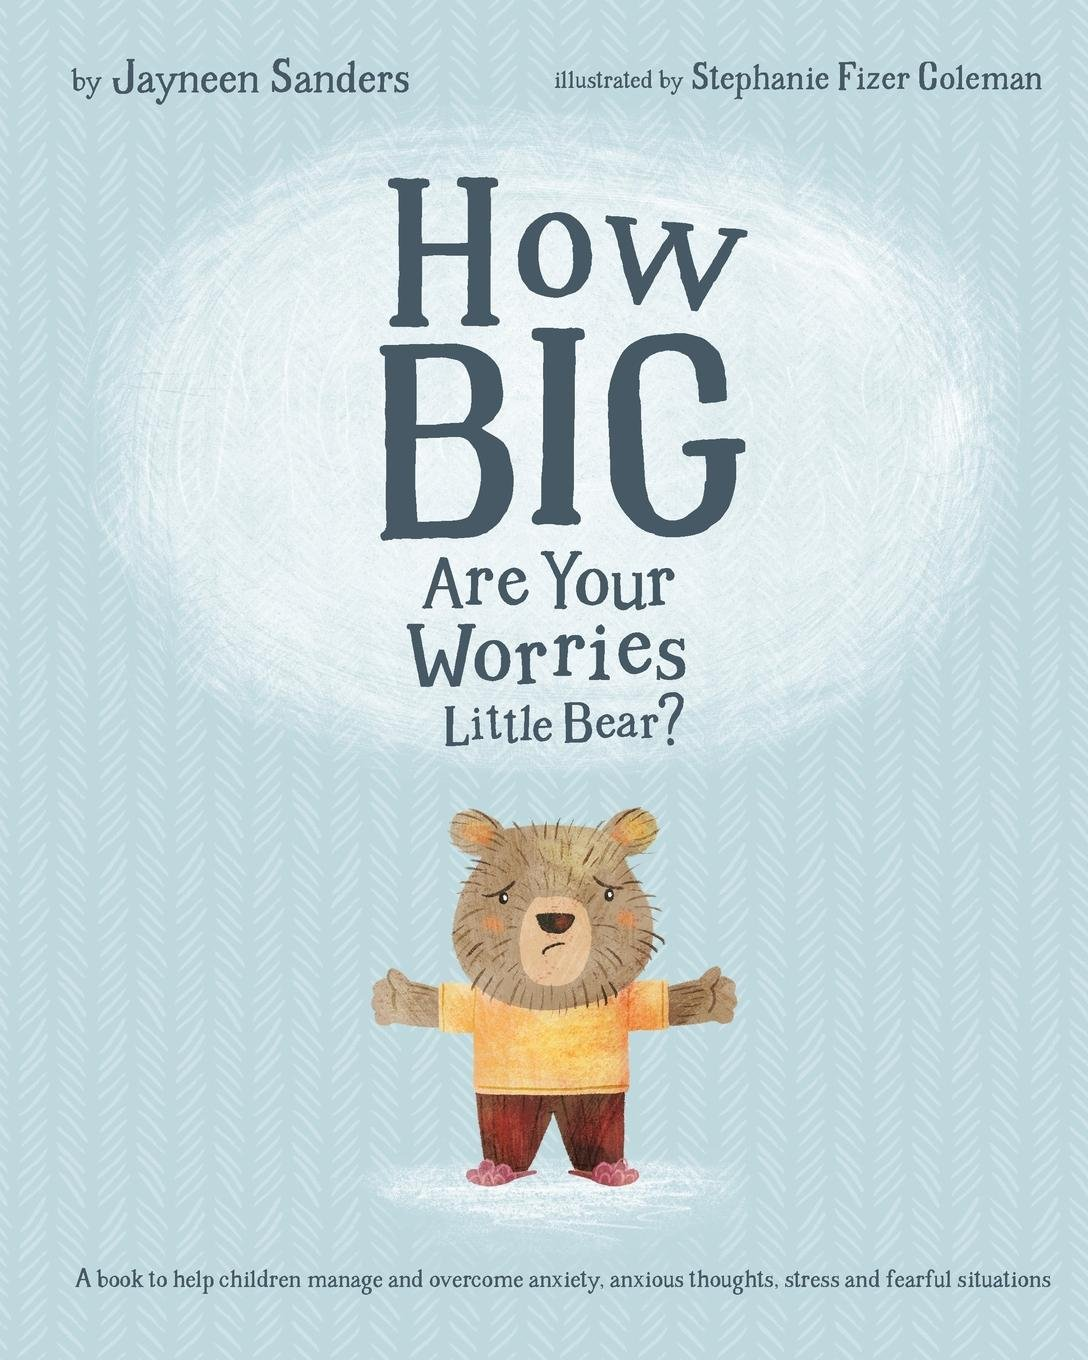 How Big Are Your Worries Little Bear - UpLoad November 2017